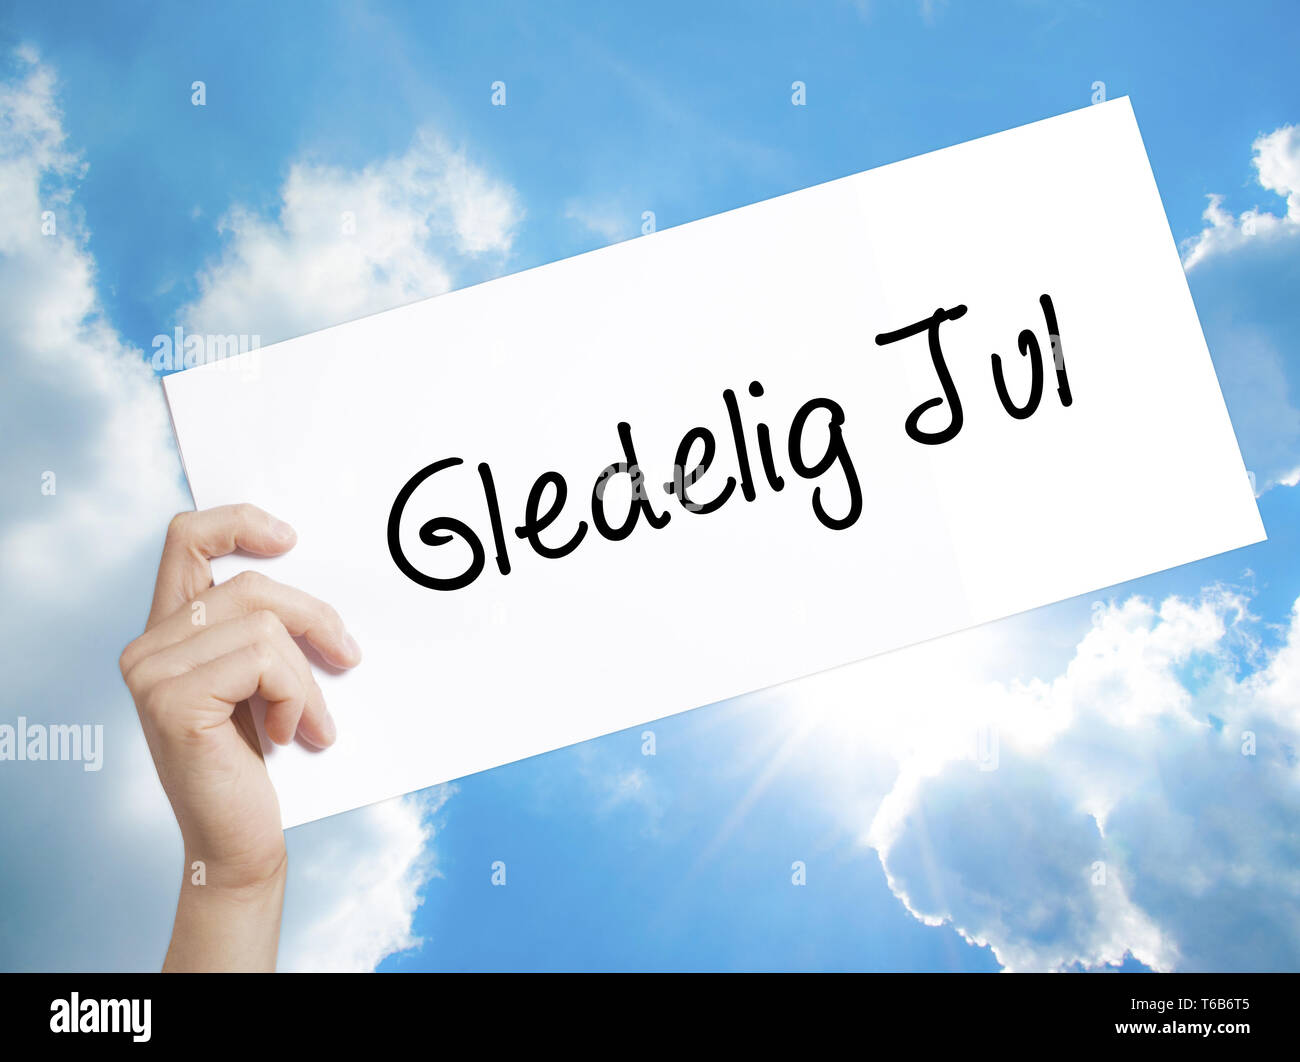 30d34d8a Gledelig Jul (Happy Christmas in Norwegian) Sign on white paper. Man Hand  Holding